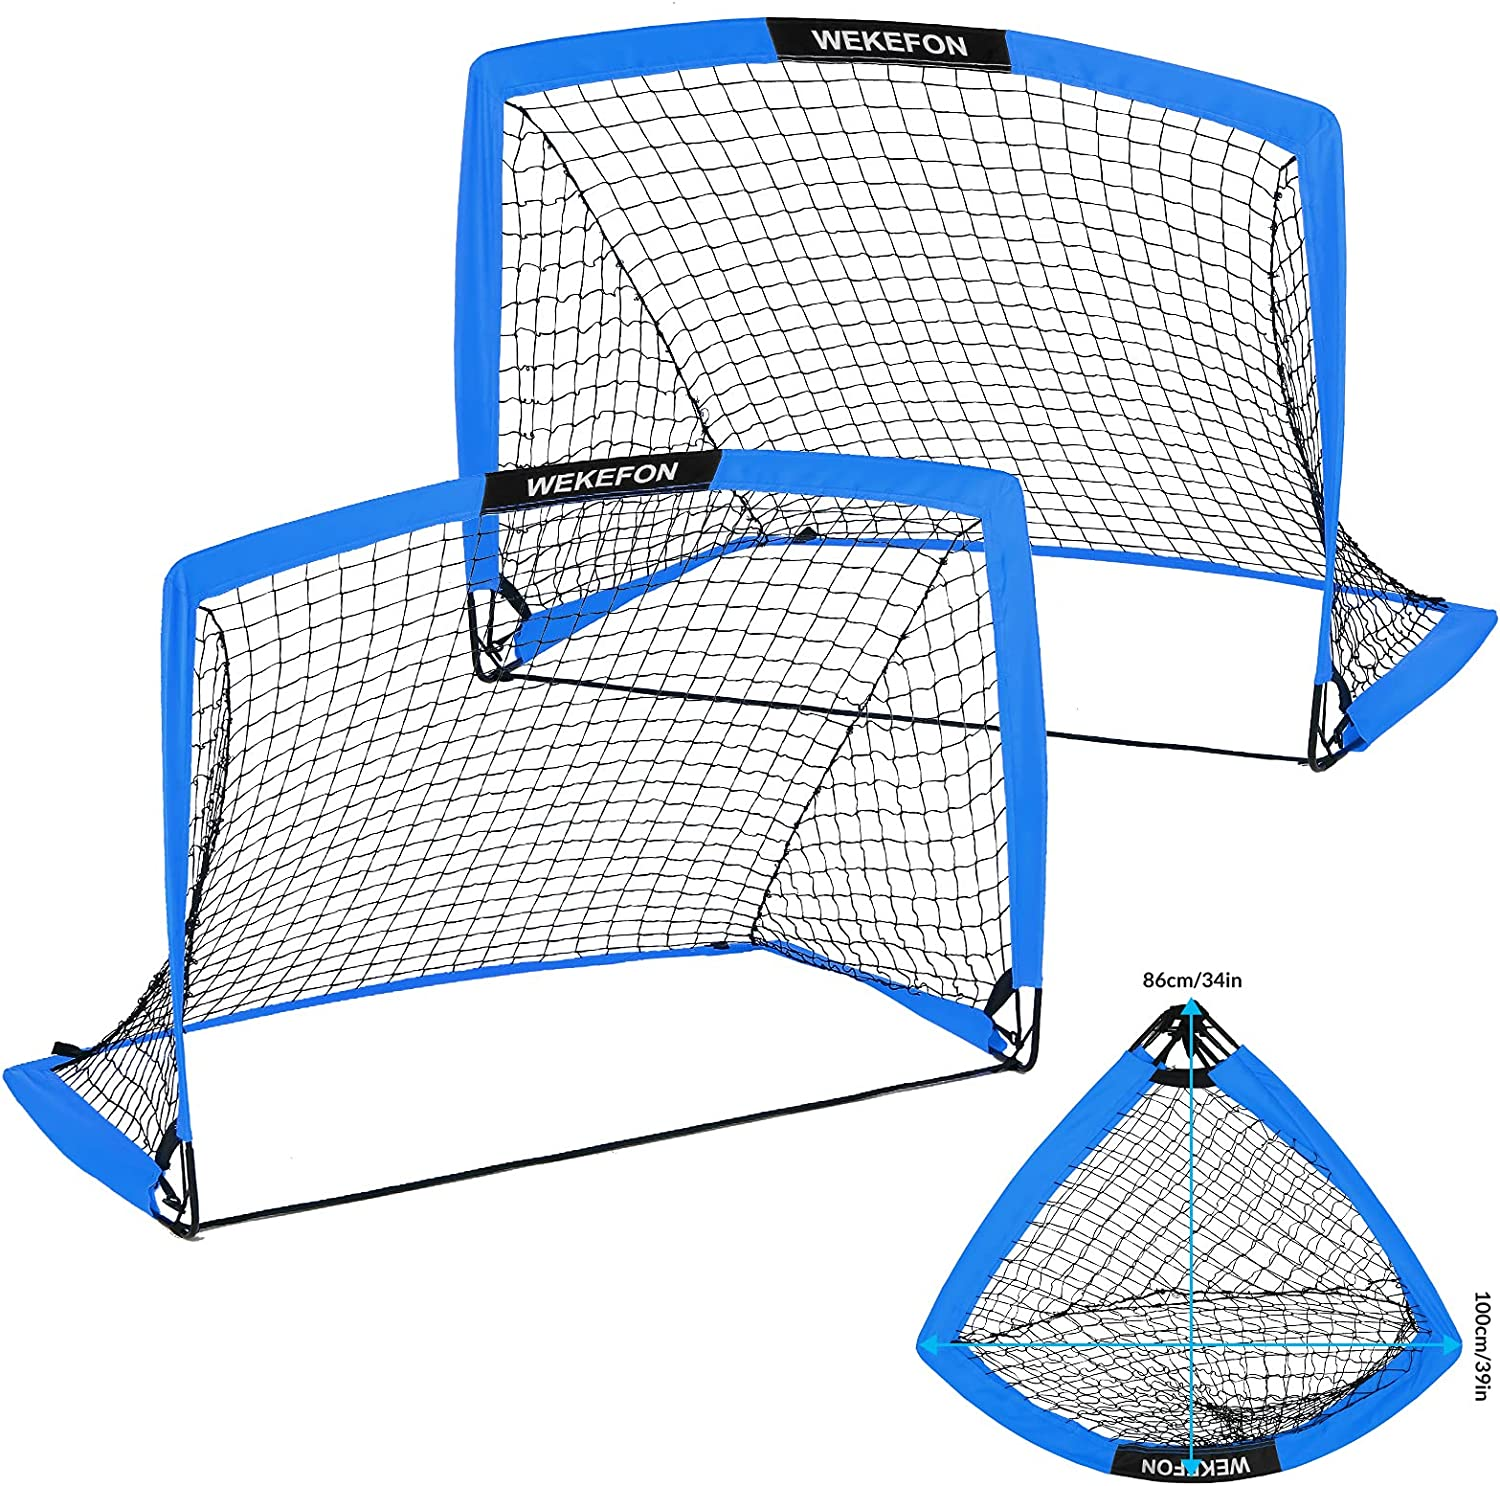 WEKEFON Soccer Goals Pop-Up Folding Carry fo Superior Quality inspection Net Bag with